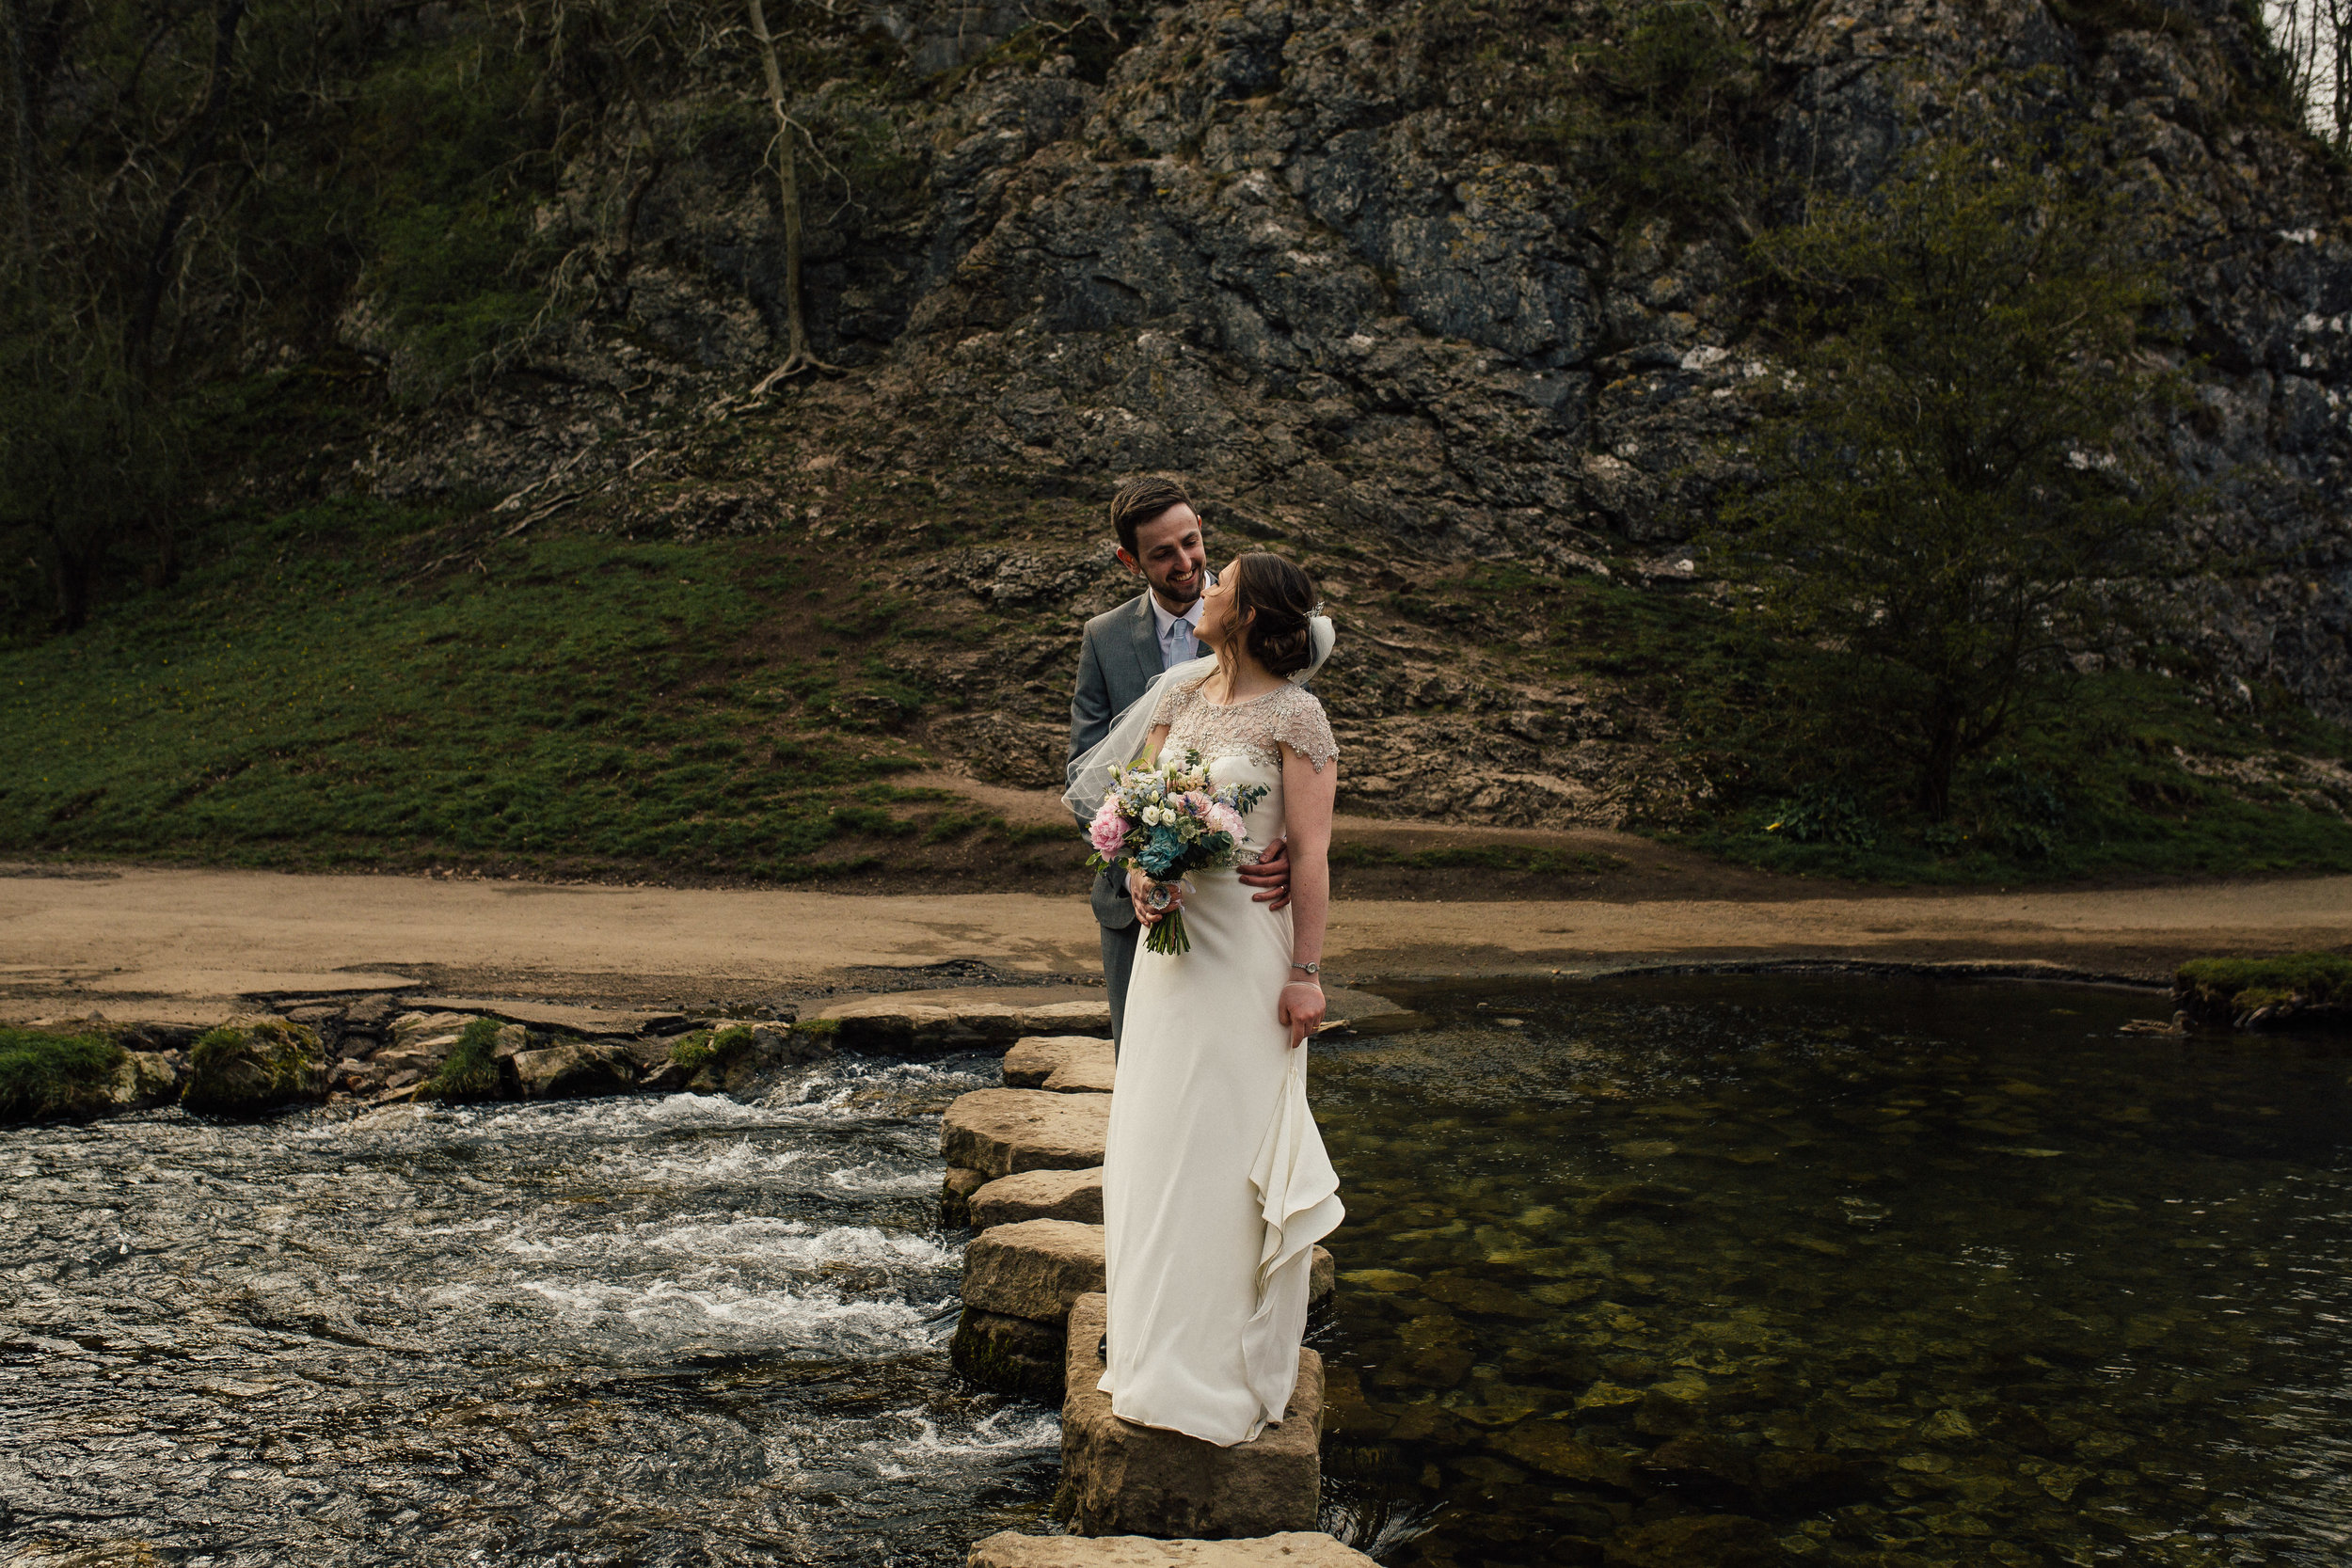 The Izaak Walton Hotel Peak District Wedding Venue